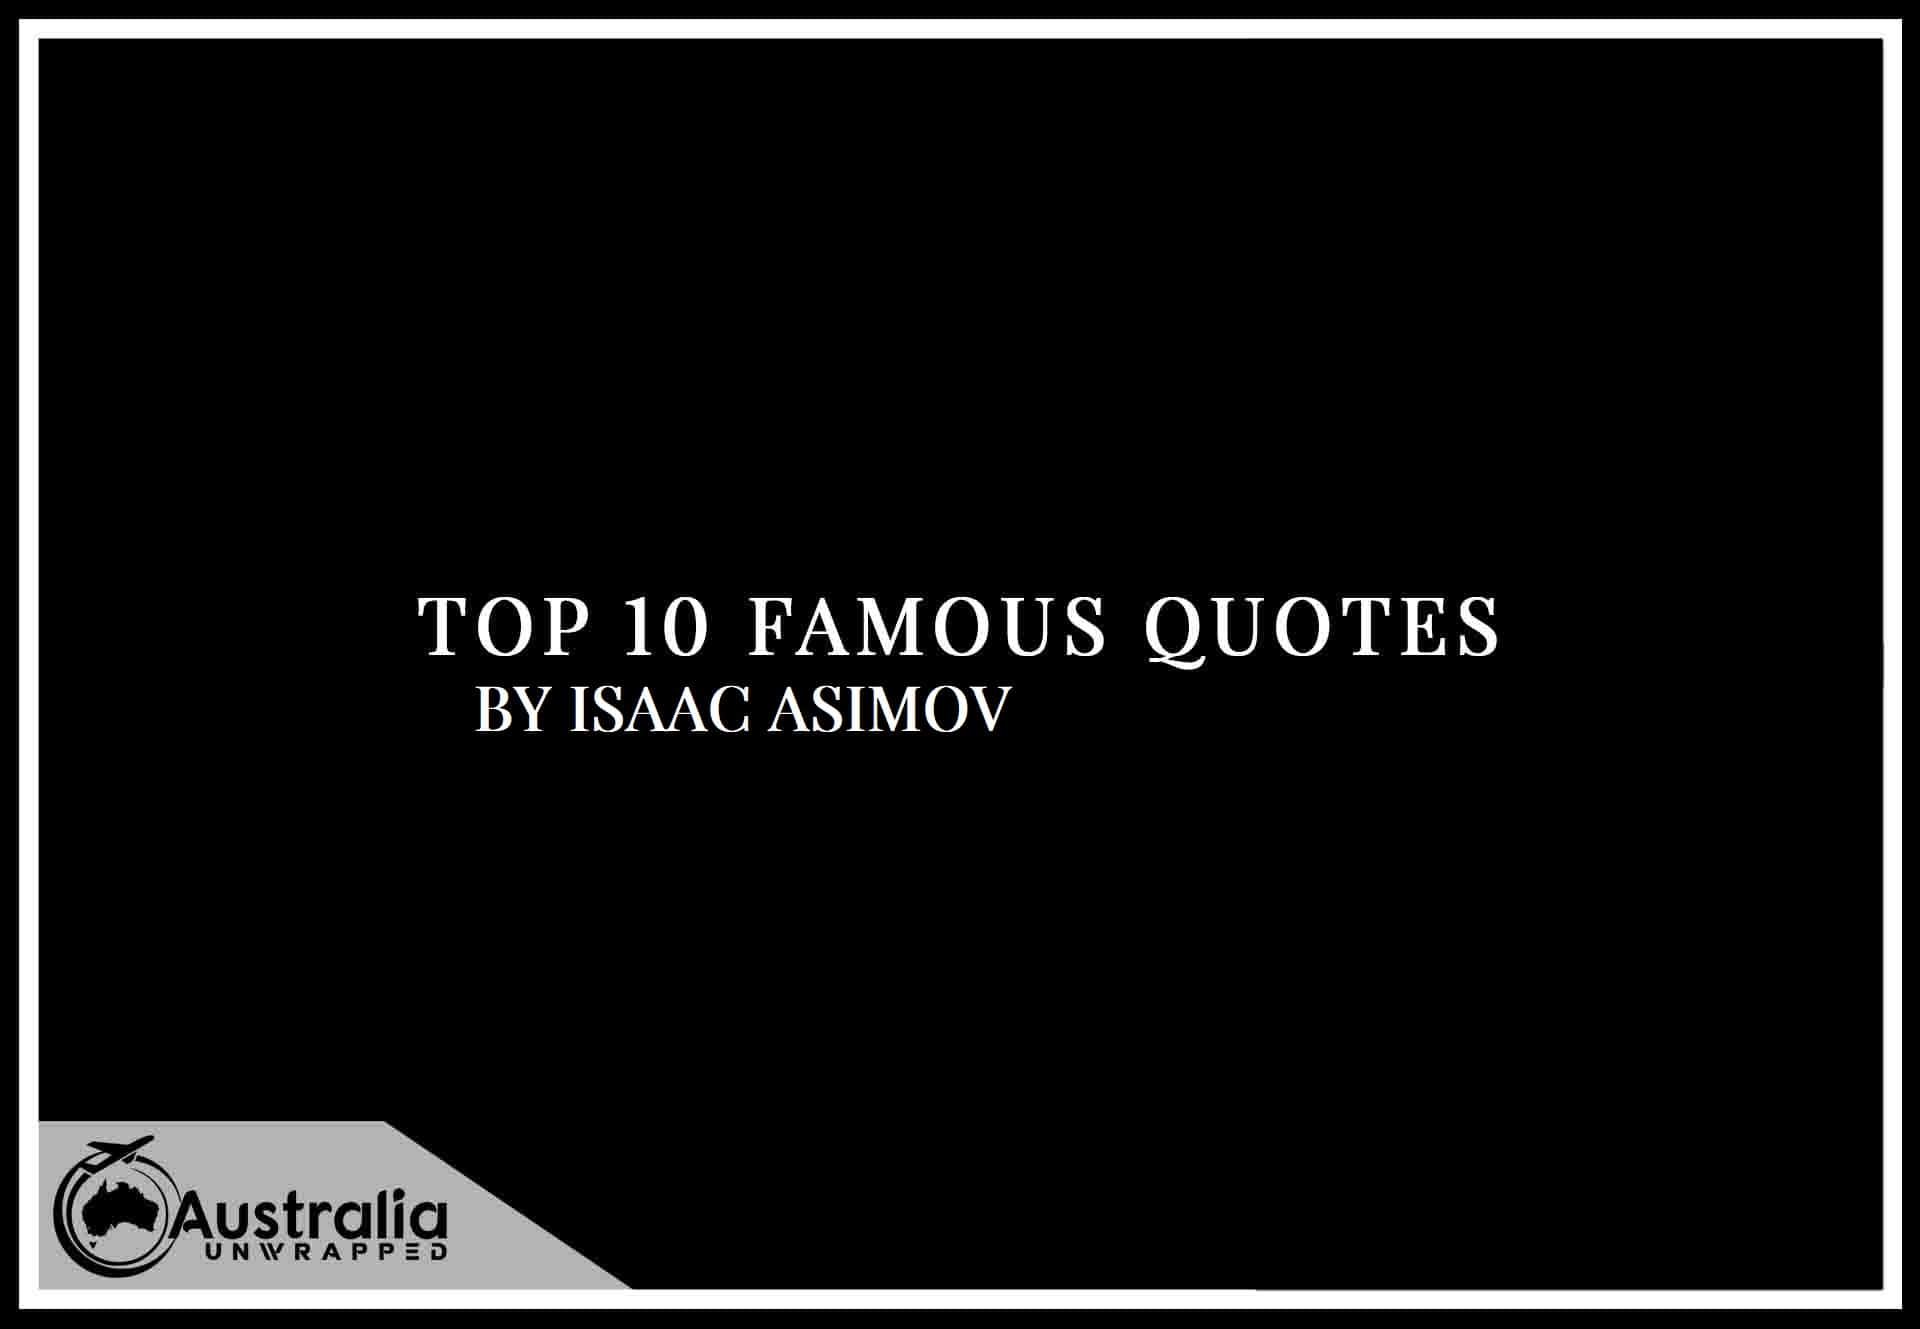 Top 10 Famous Quotes by Author Isaac Asimov